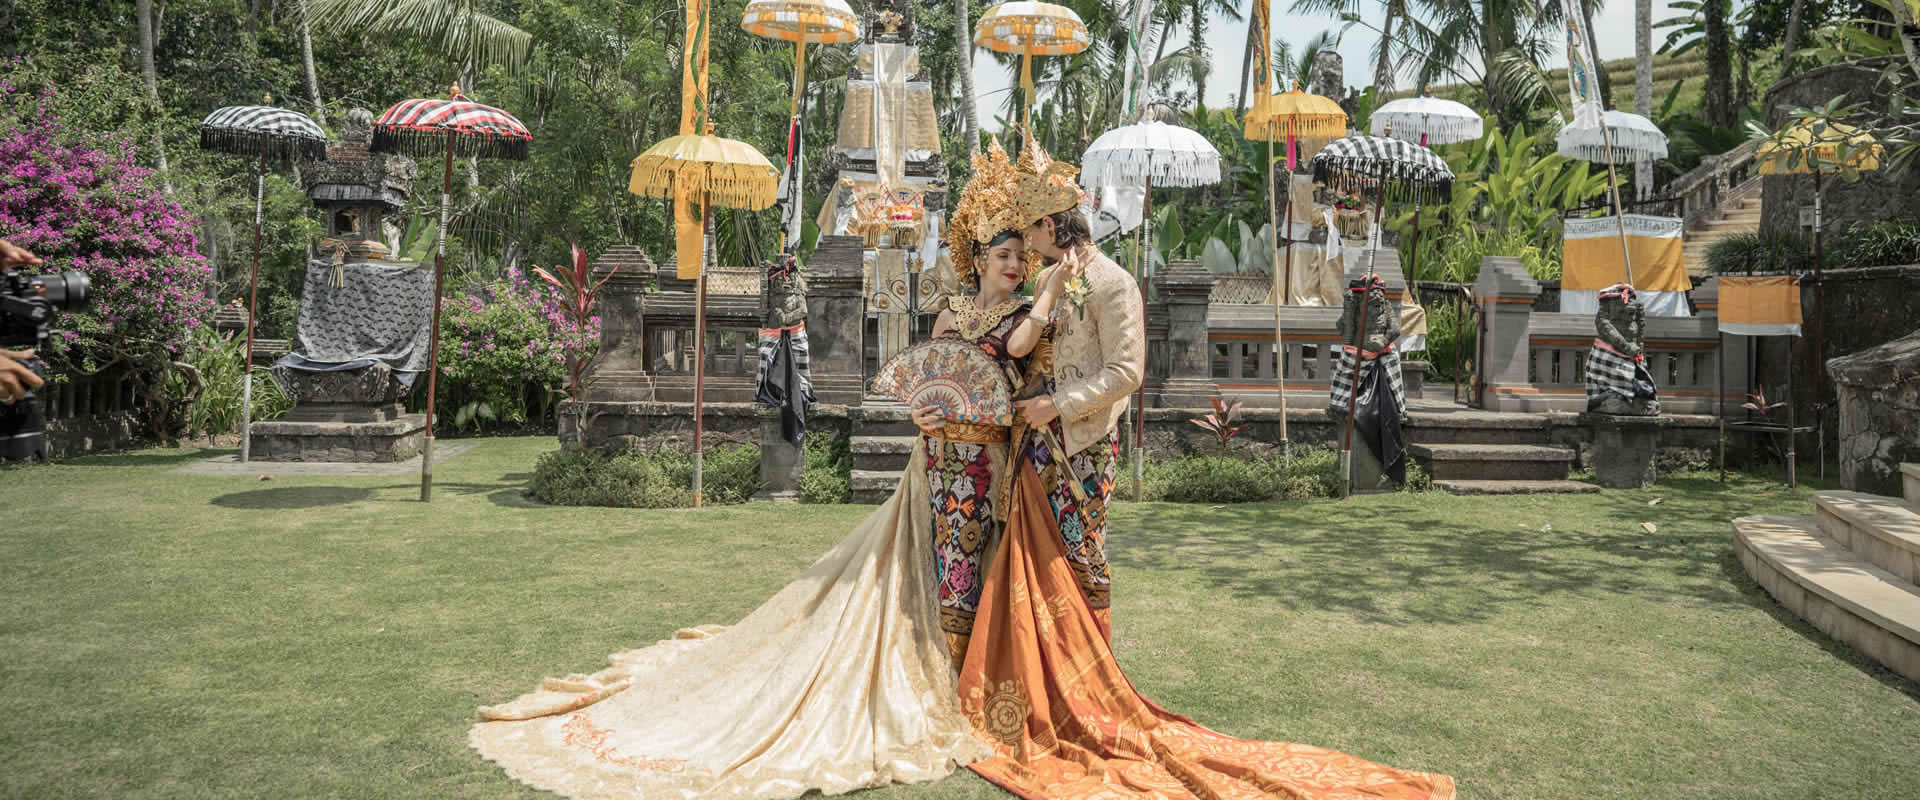 hotelpuriwulandari_wedding3.jpg